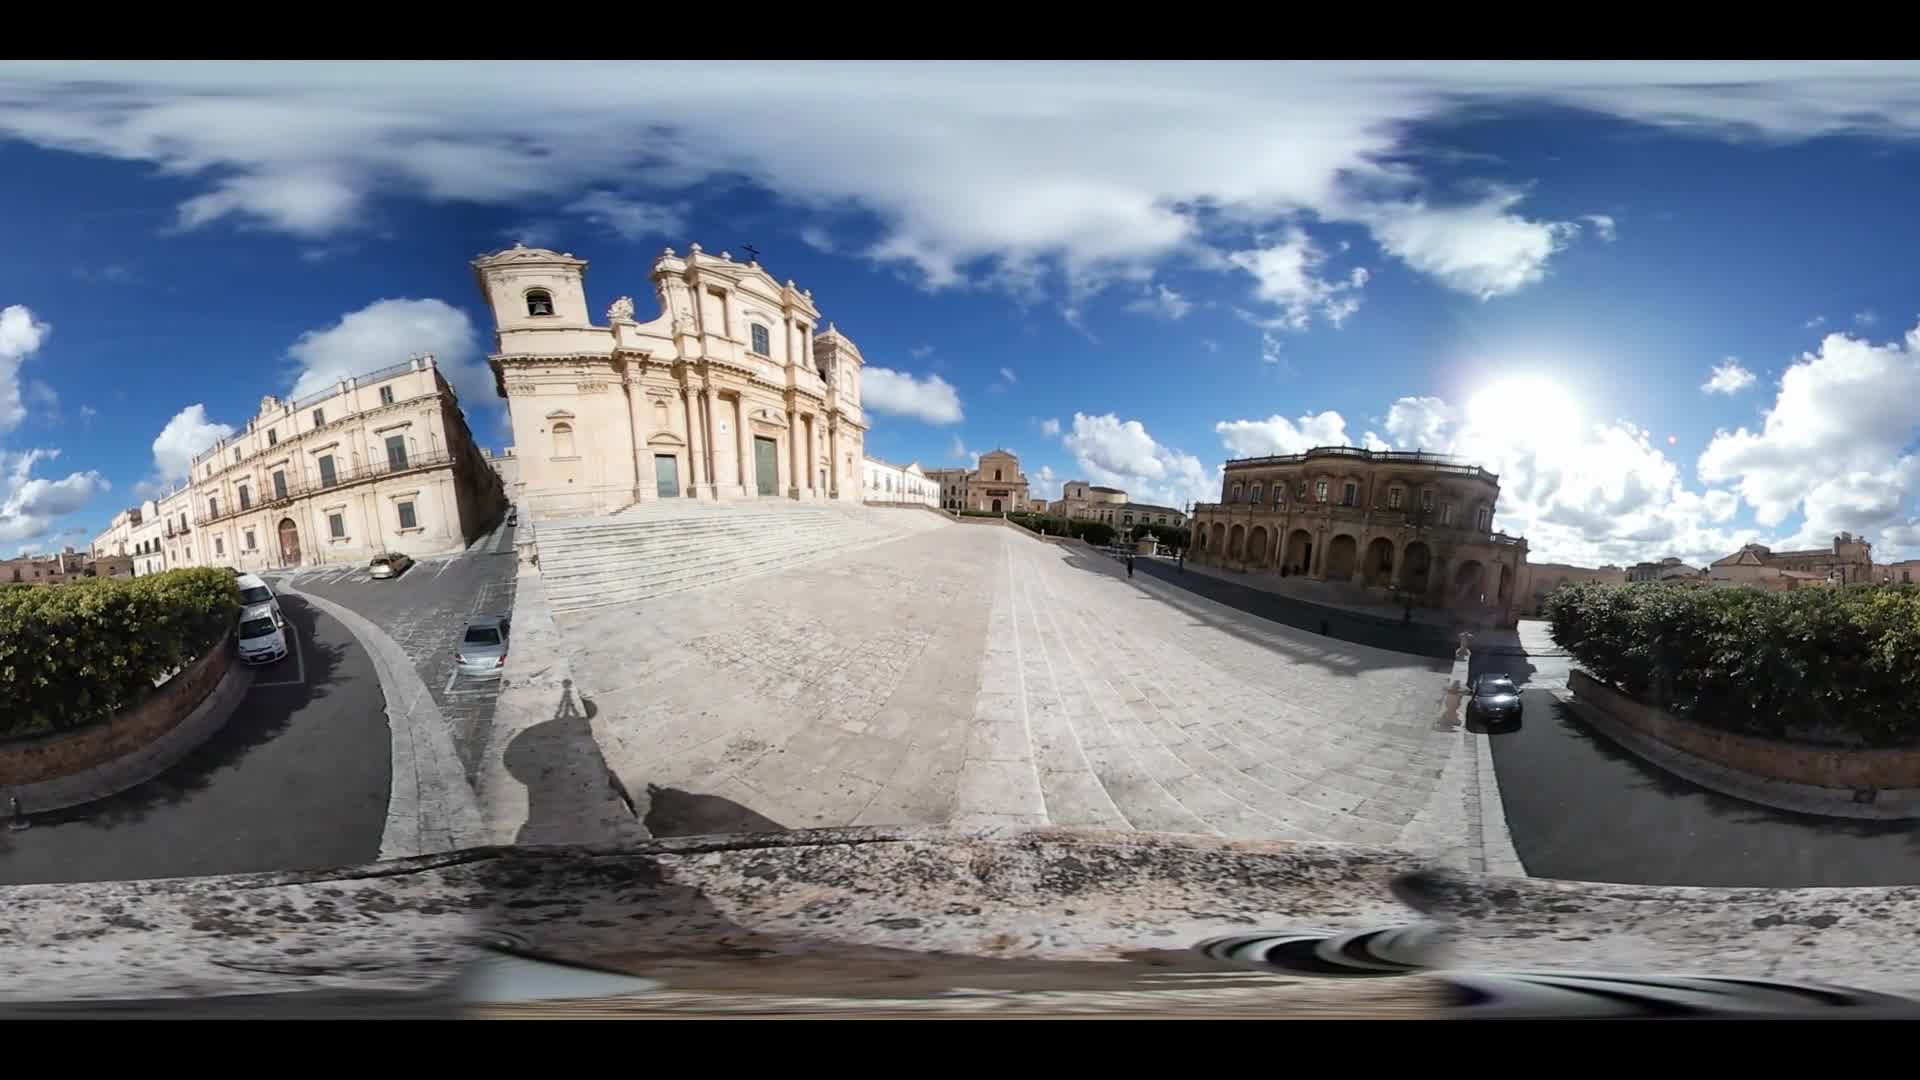 Virtual Reality 360 view from the city Noto in Italy